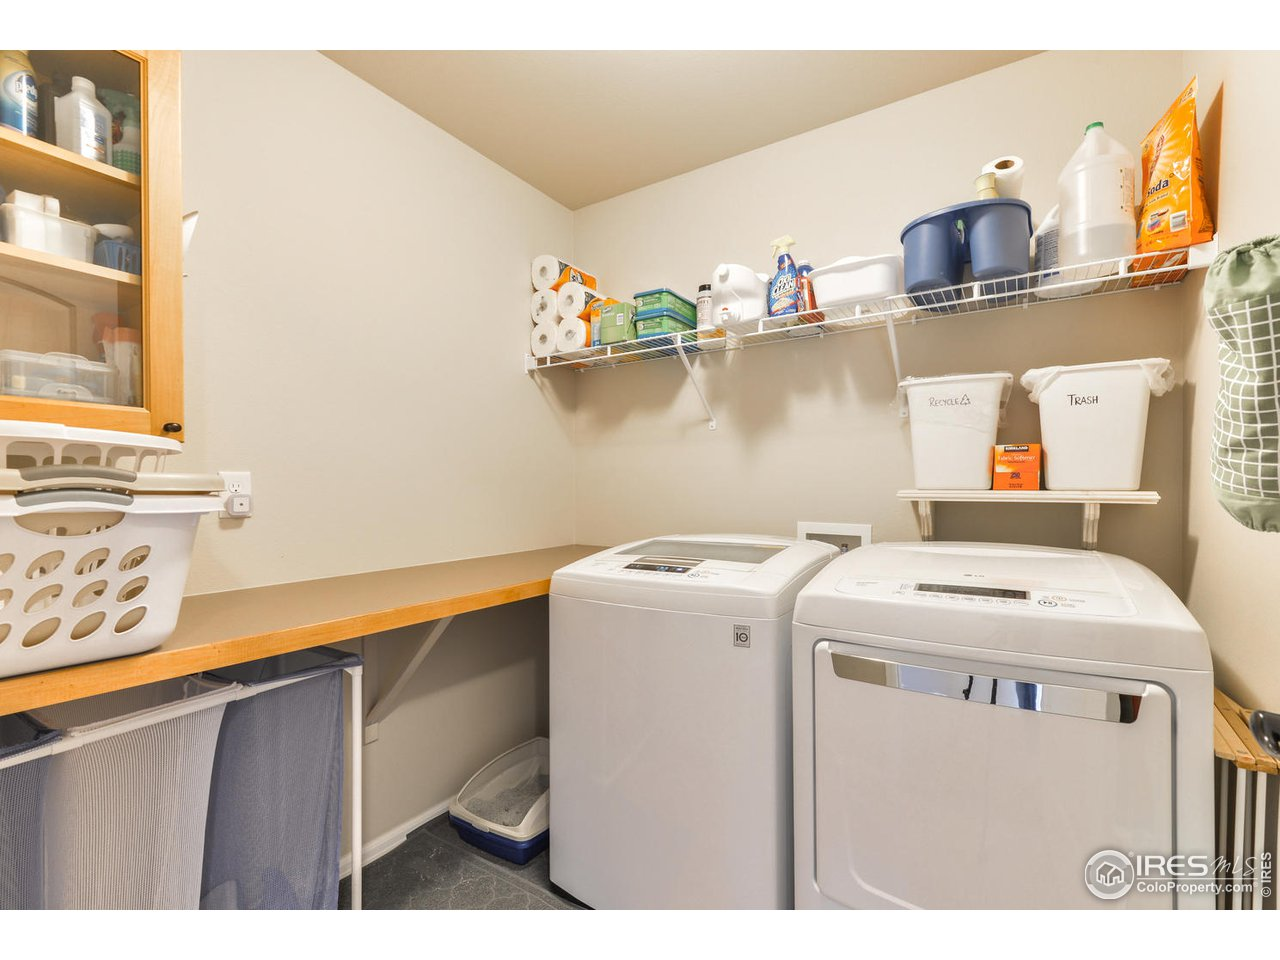 Upper level laundry room - no stairs with laundry!